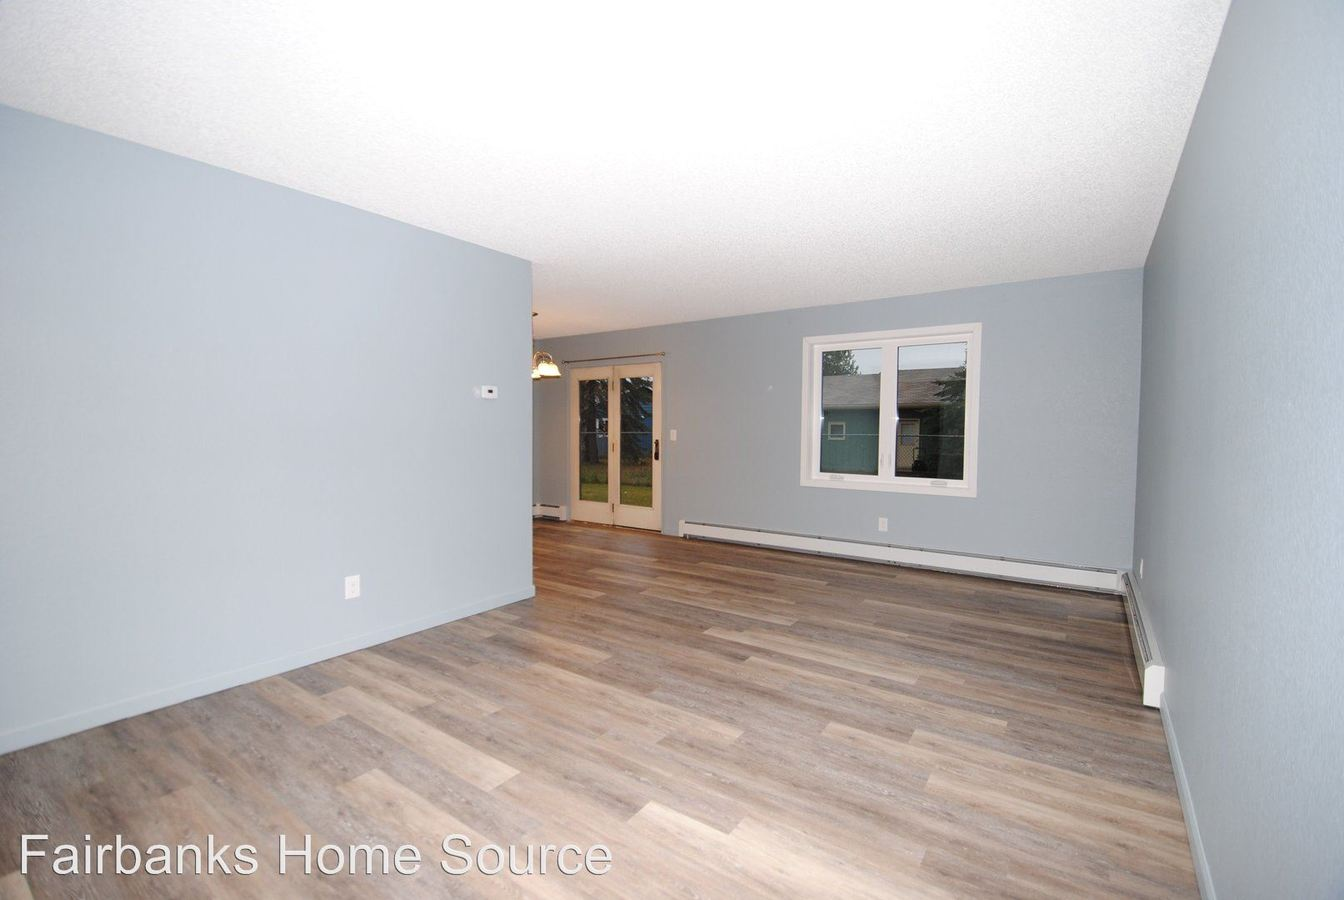 3 Bedrooms 1 Bathroom Apartment for rent at 4922/4924 Princeton Drive in Fairbanks, AK